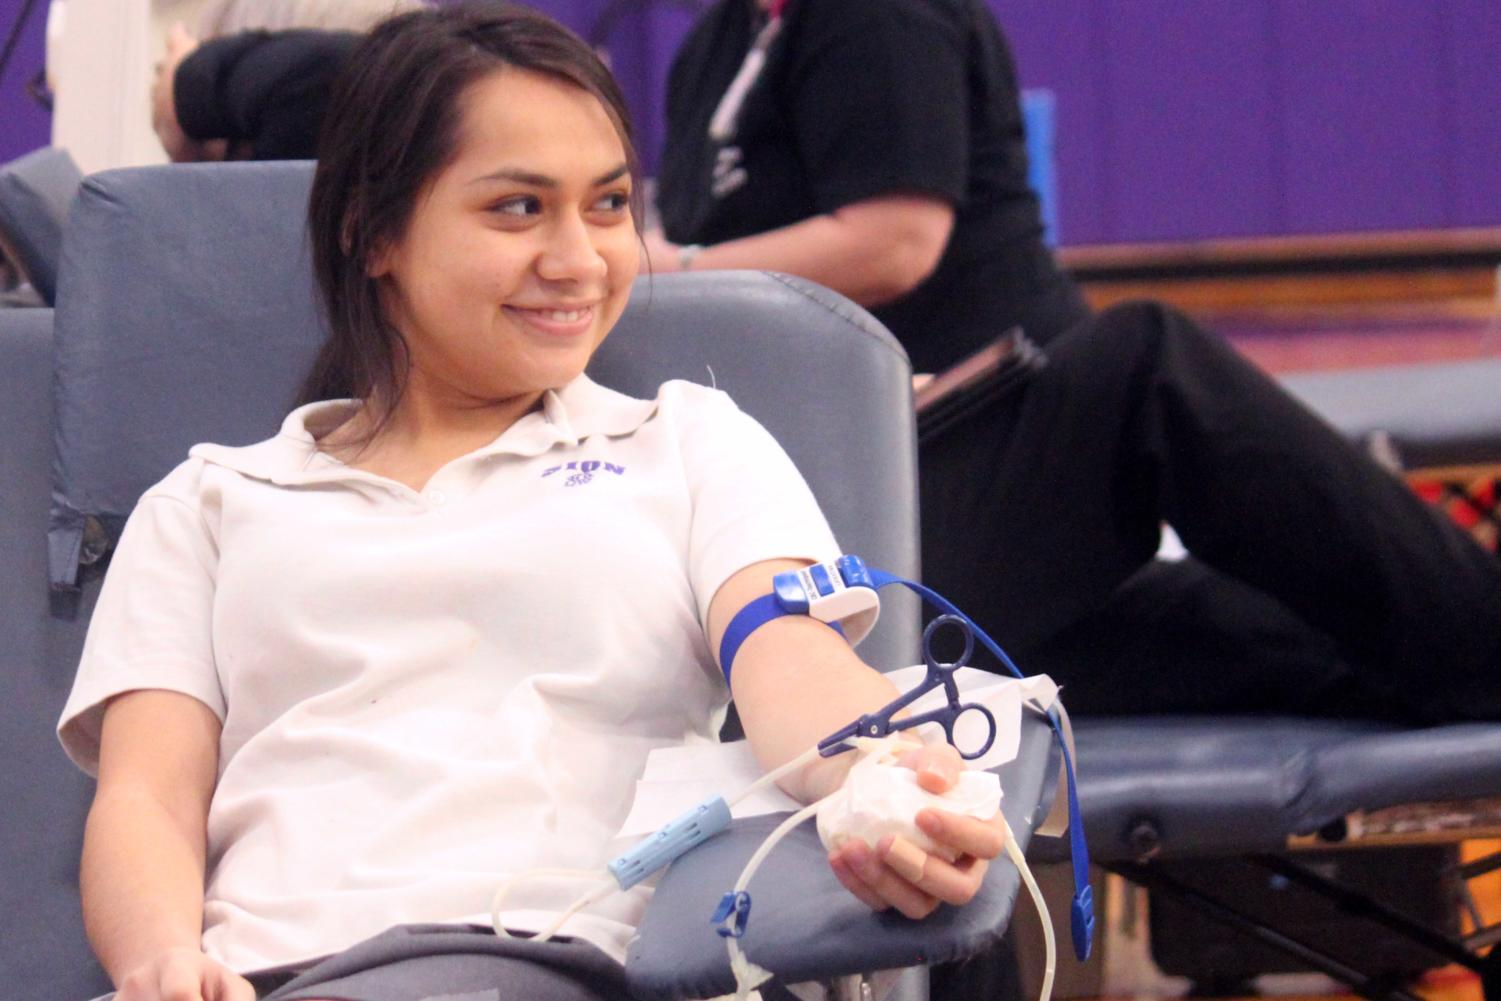 Junior Denise Carmona donates blood at the annual blood drive organized by the National Honors Society, Feb. 2, 2018.